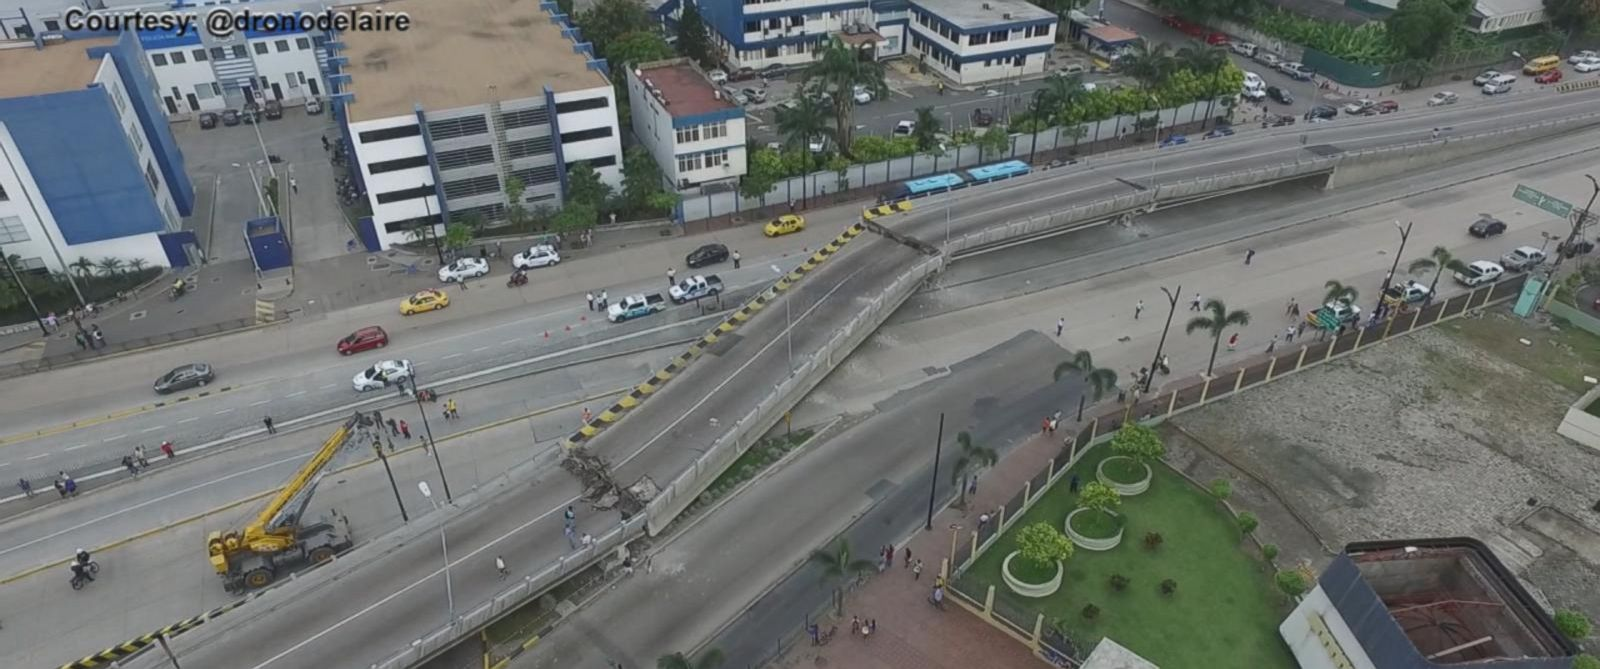 PHOTO: Aerial footage shows collapsed bridge in Guayaquil after a powerful quake hit Ecuador, April 17, 2016.